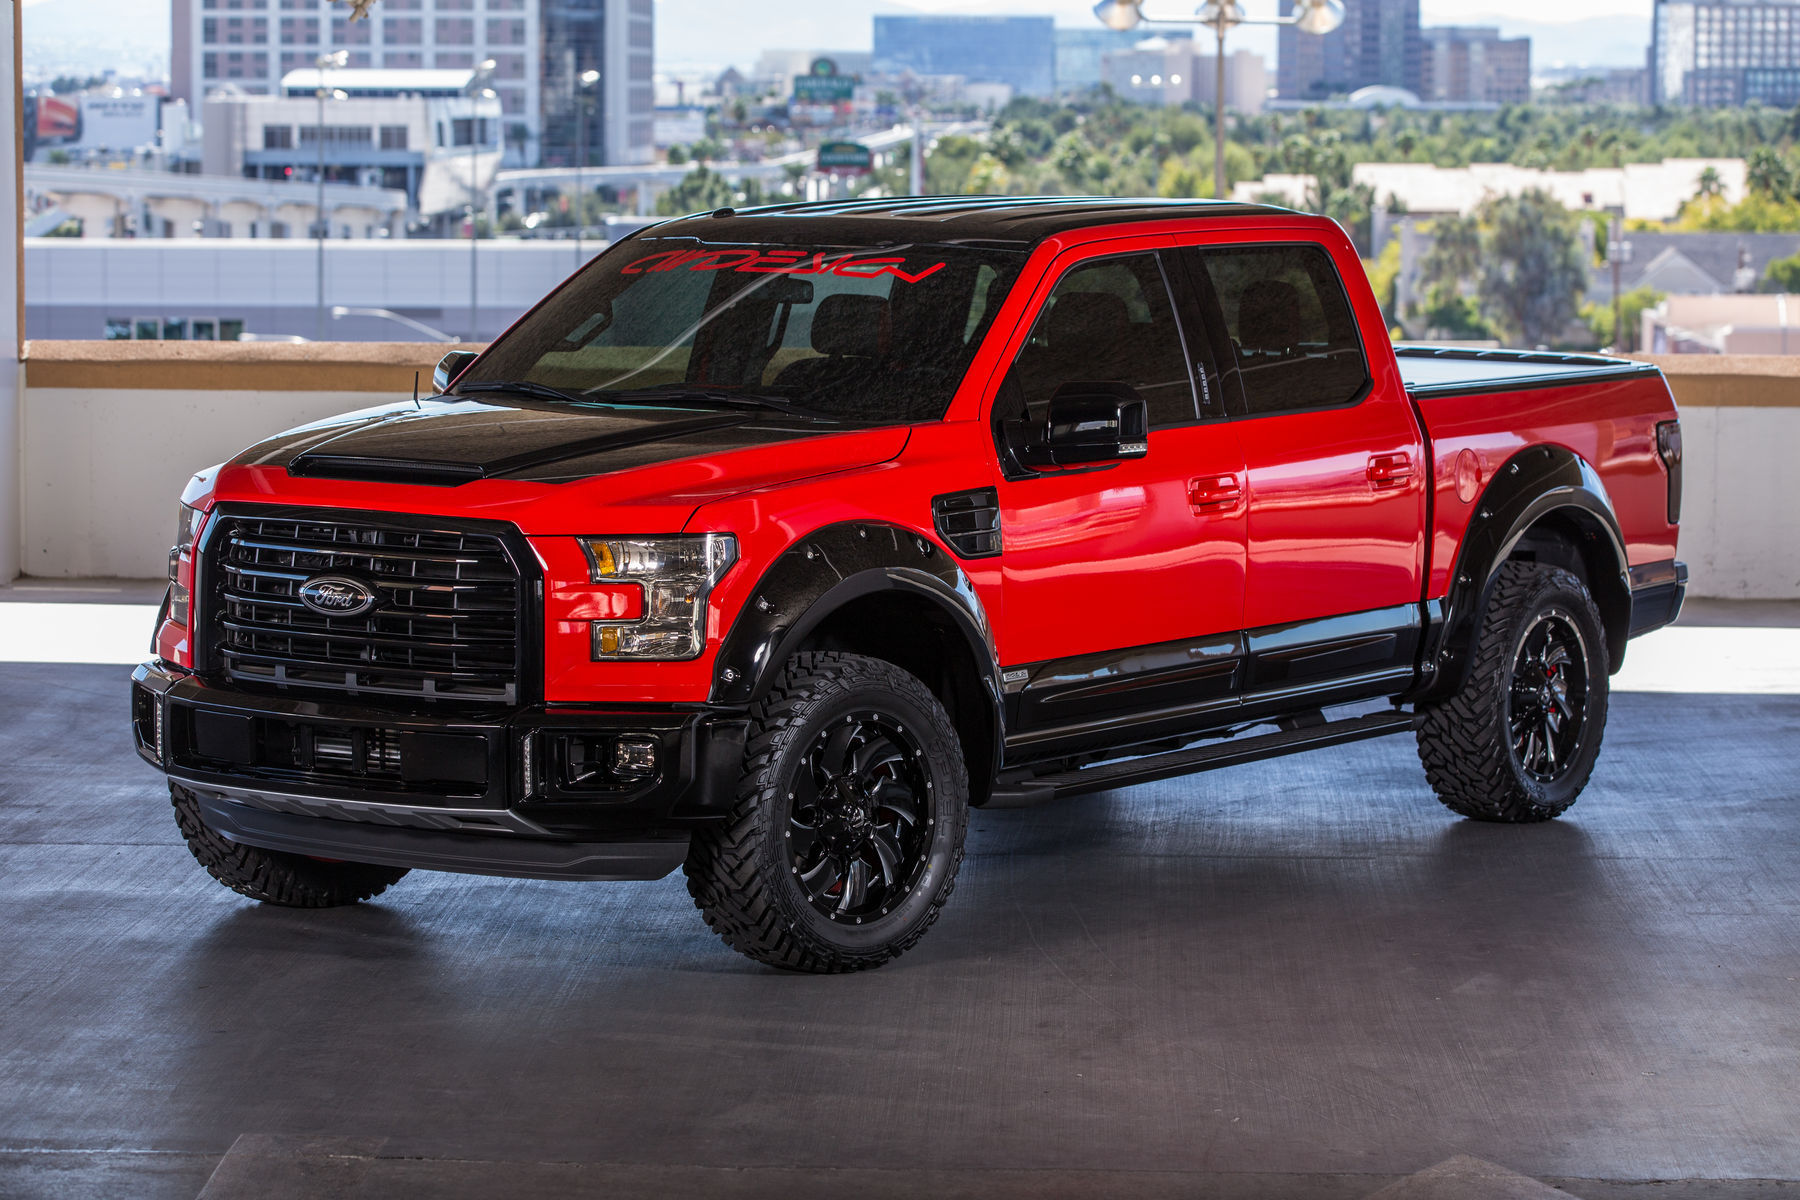 2015 Ford F-150 | 2015 AIRDESIGN Ford F-150 - SEMA Photo Shoot